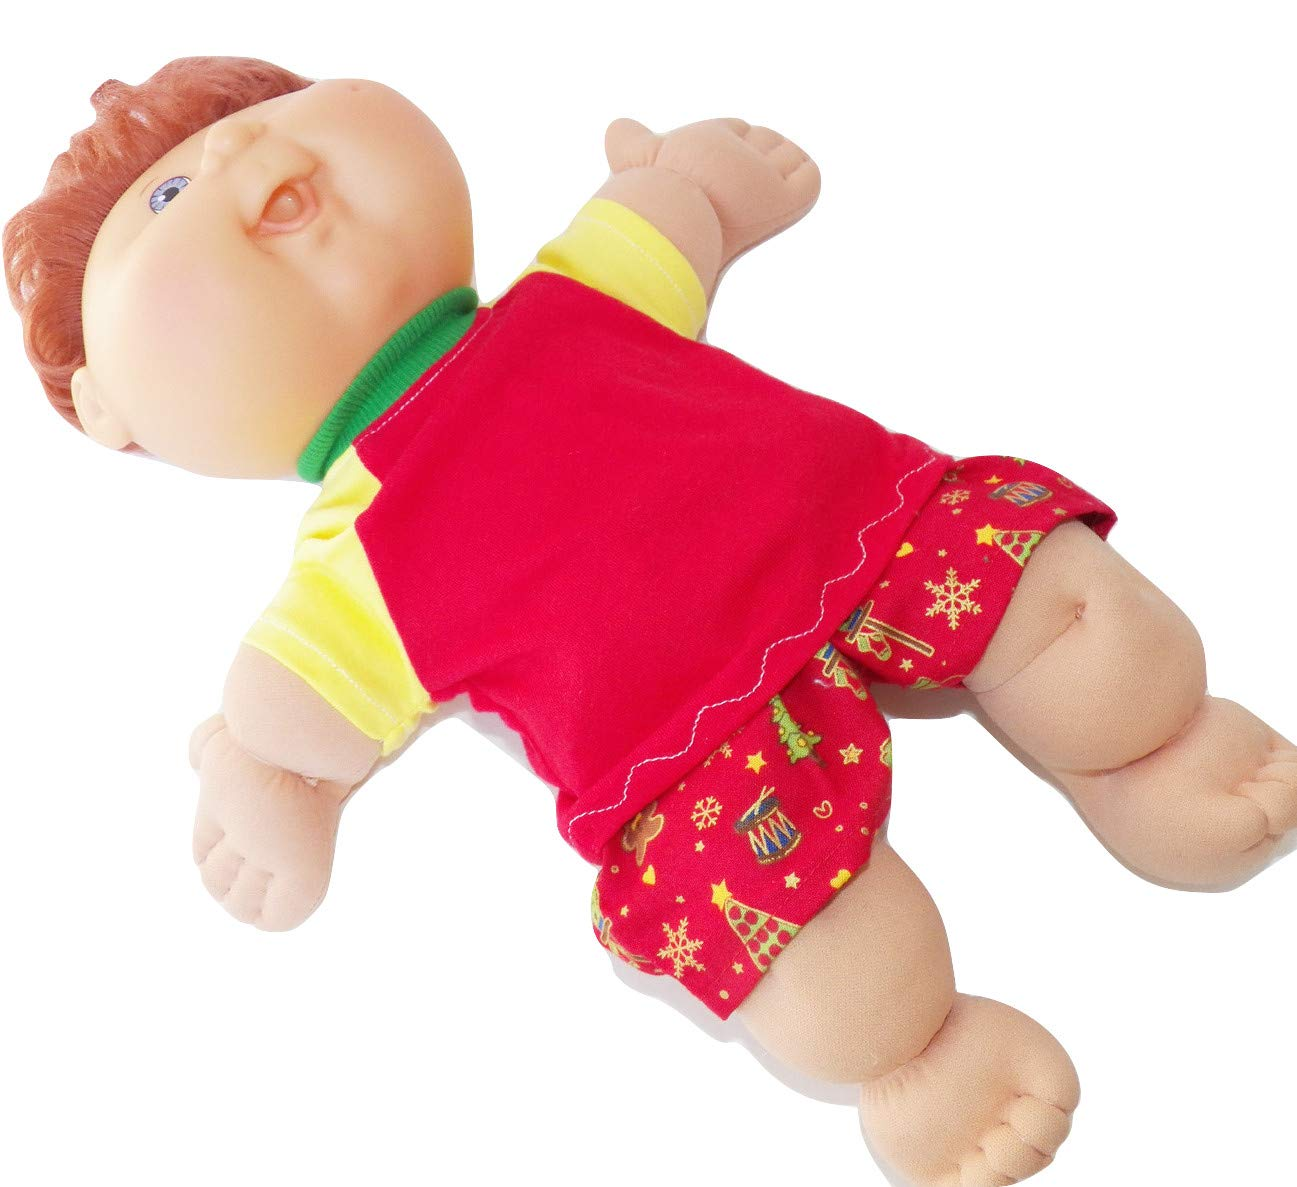 Cabbage Patch Doll Clothes Fits 14 inch Boy or Preemie or Bitty Baby Red Yellow Tree Print Shorty Pajamas